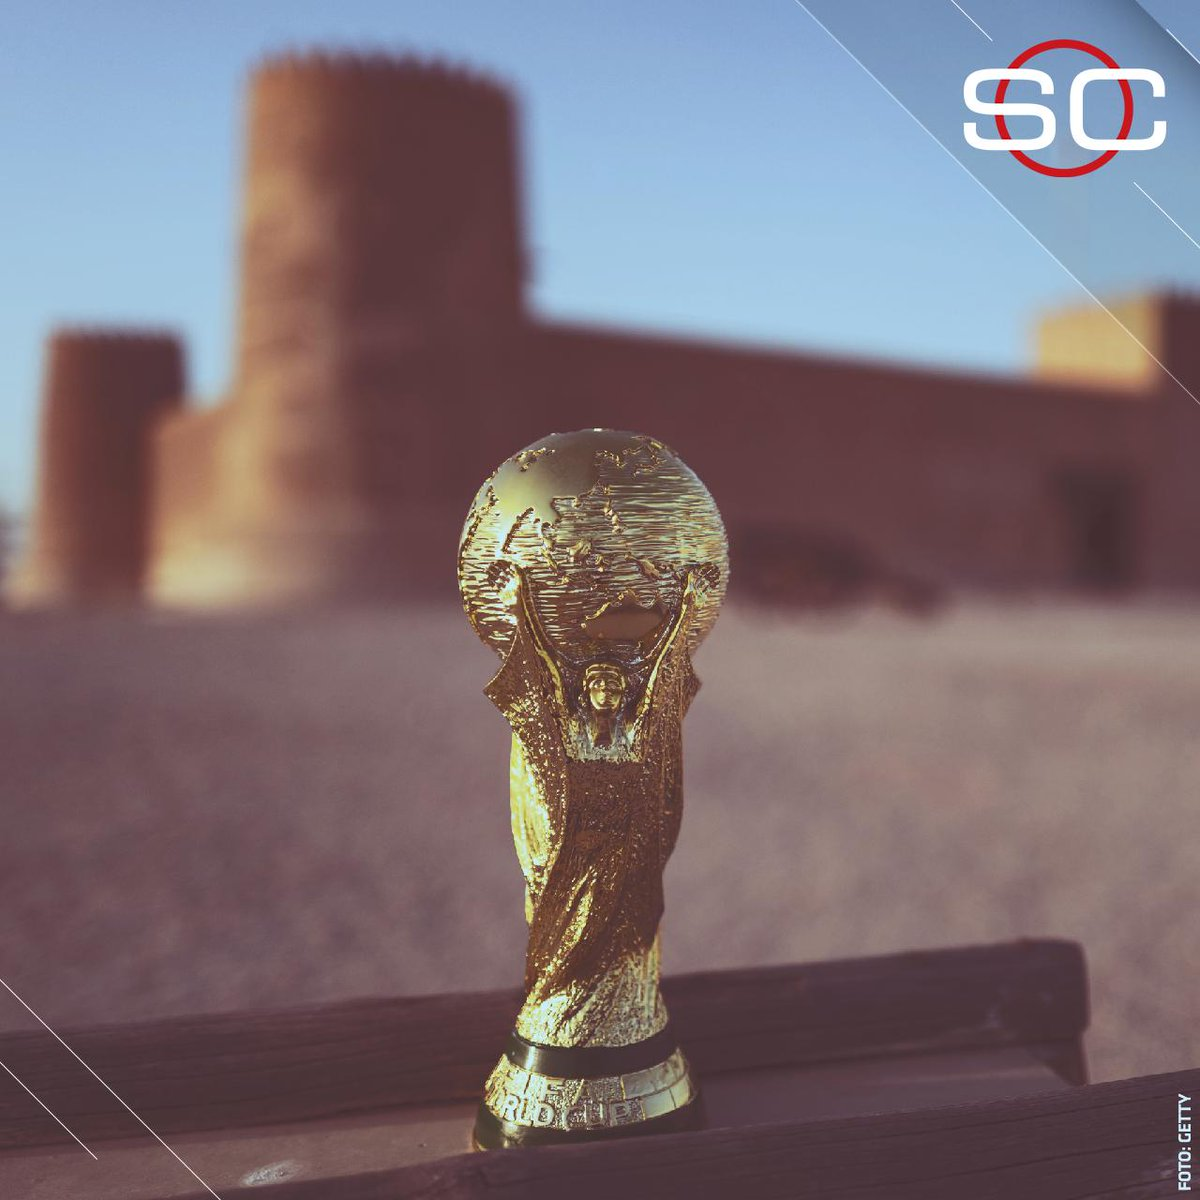 Sportscenter en español's photo on Qatar 2022